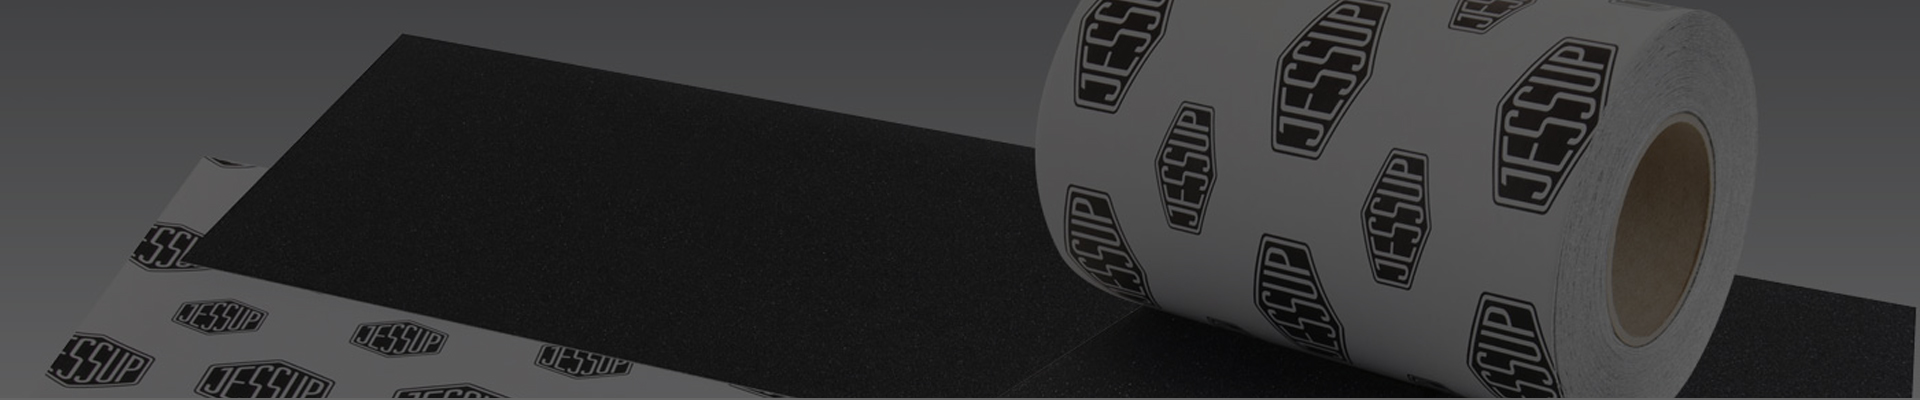 Skateboard Grip Tape online | Buy Now on Xtreme-Skate.com